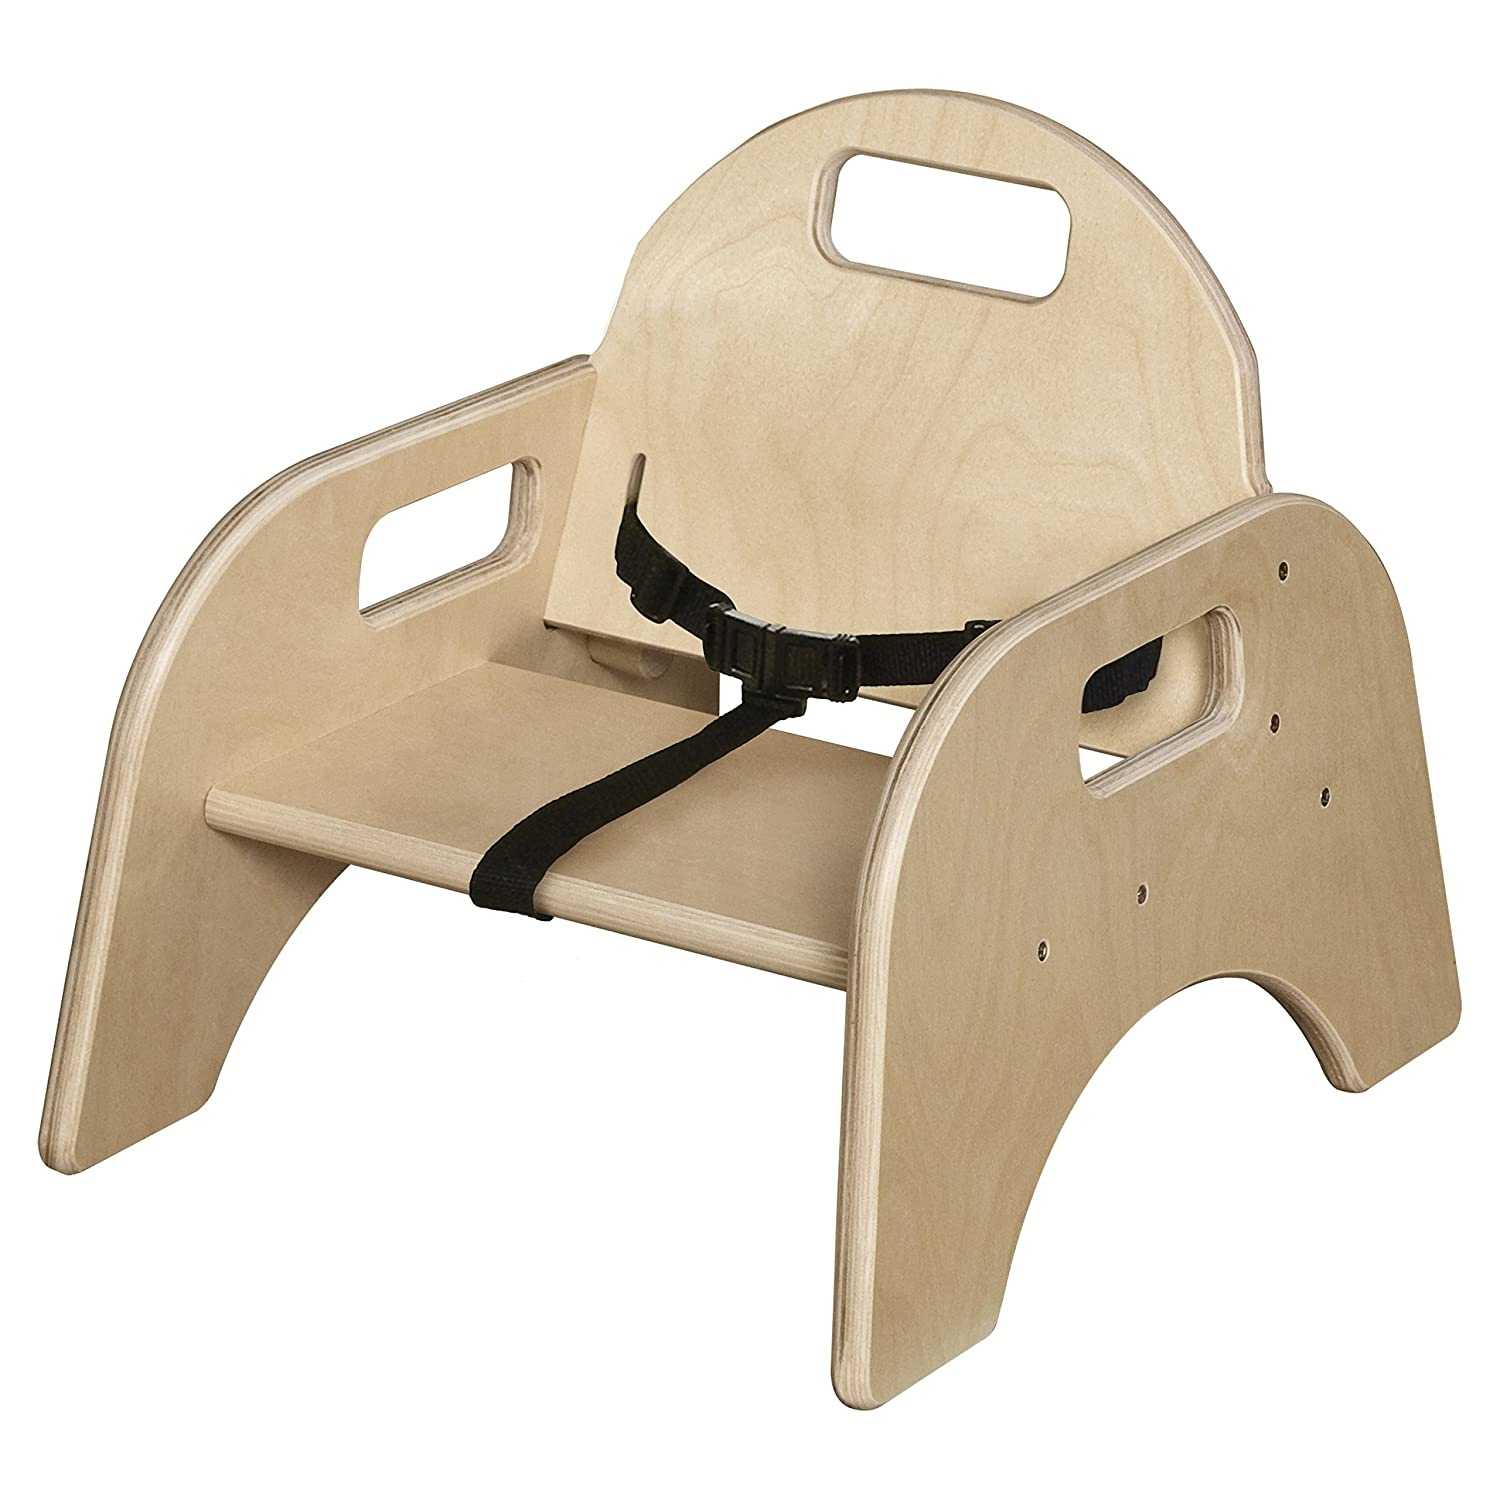 Wood Designs 80502BT Woodie Desk Chairs 2 5 Seat Height Carton of Includes Belt Strap